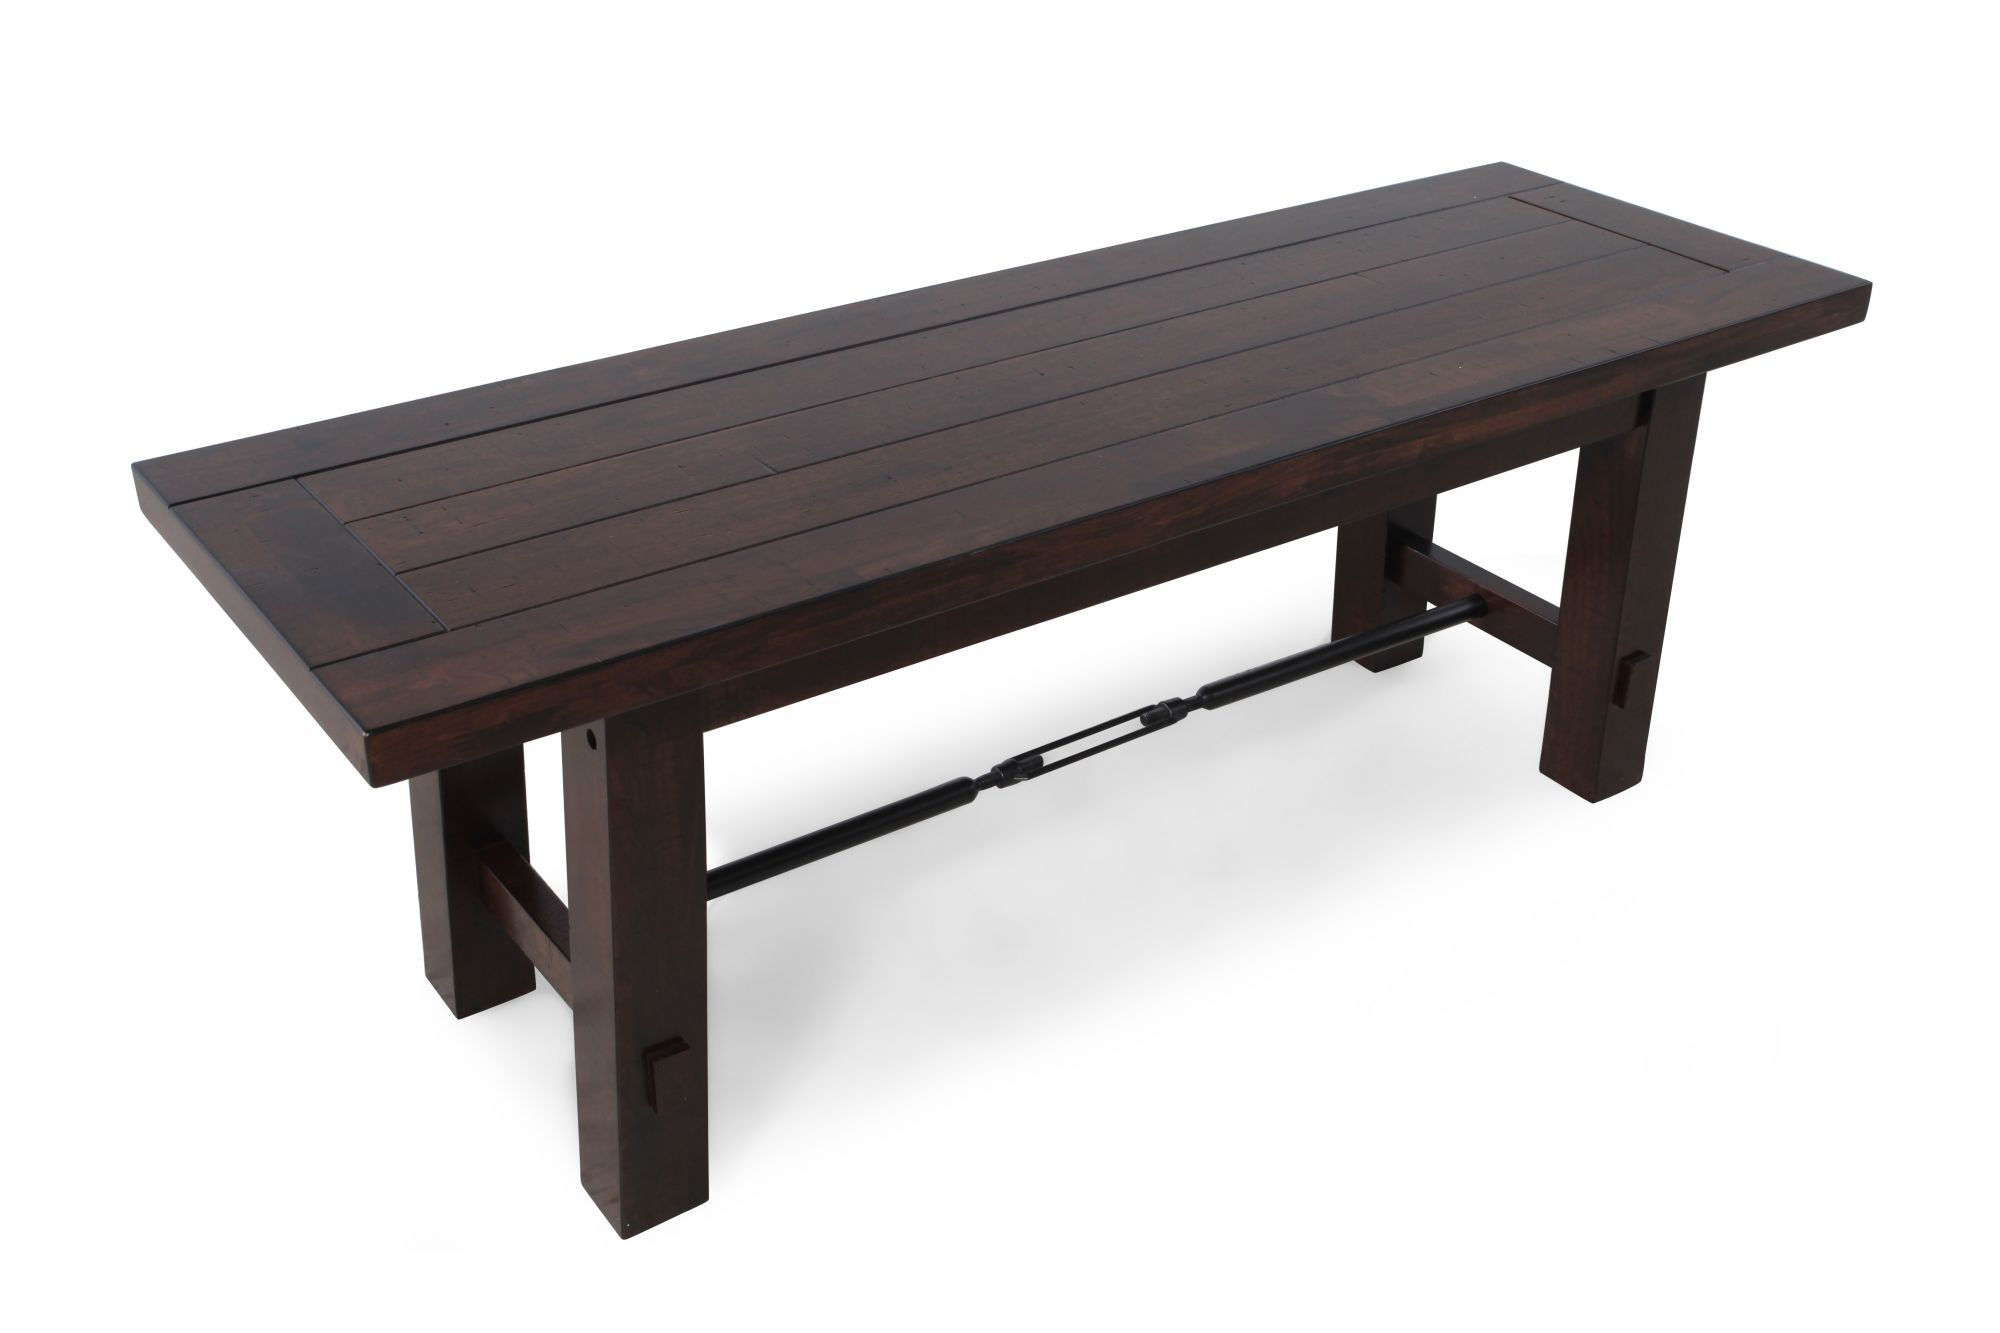 ... Dark Brown; Planked Top 50u0026#39;u0026#39; Dining Bench ...